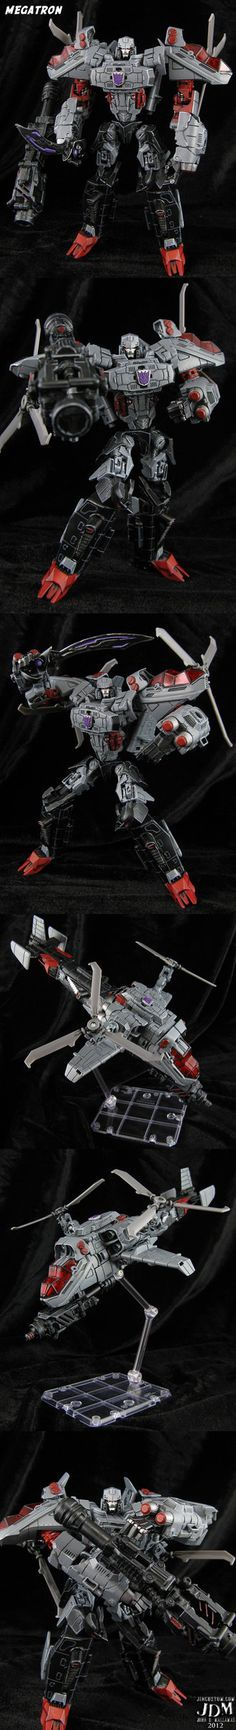 Generation Animation Megatron Figure by Jin-Saotome